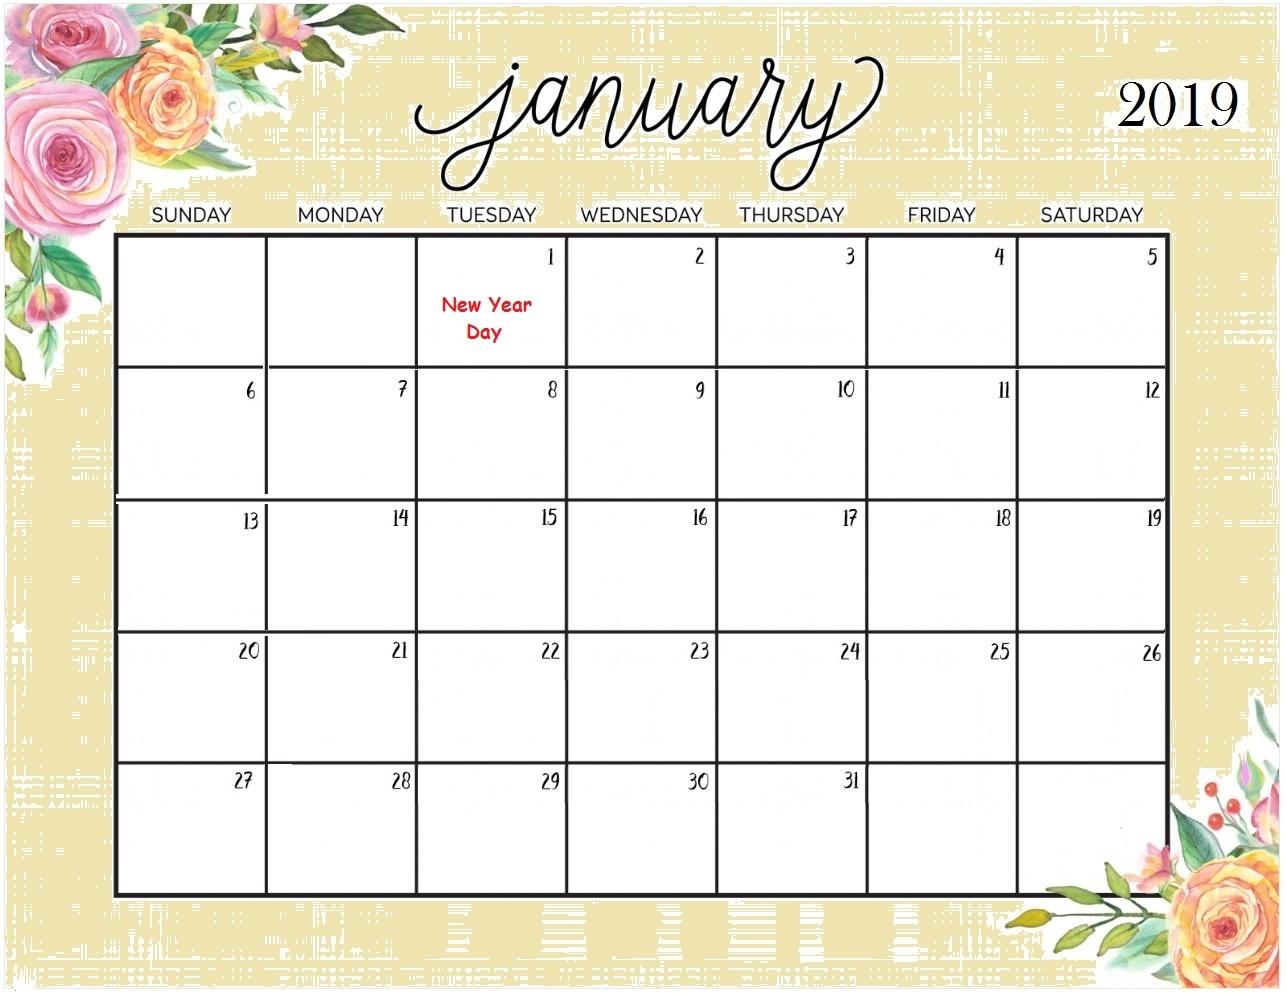 january 2019 calendar printable archives printable calendar 2018::January 2019 Calendar Printable